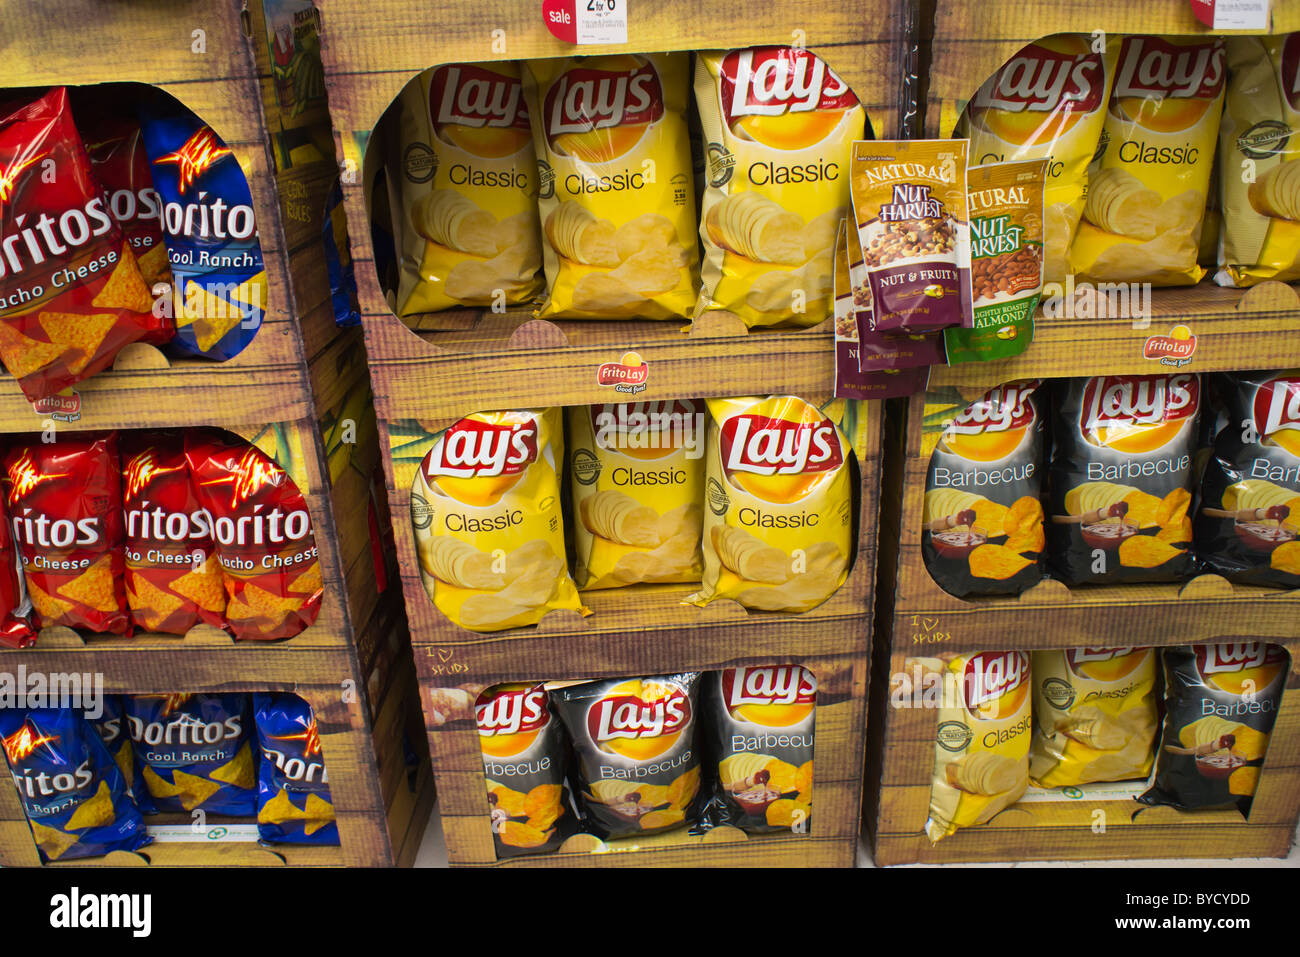 lays chips display stock